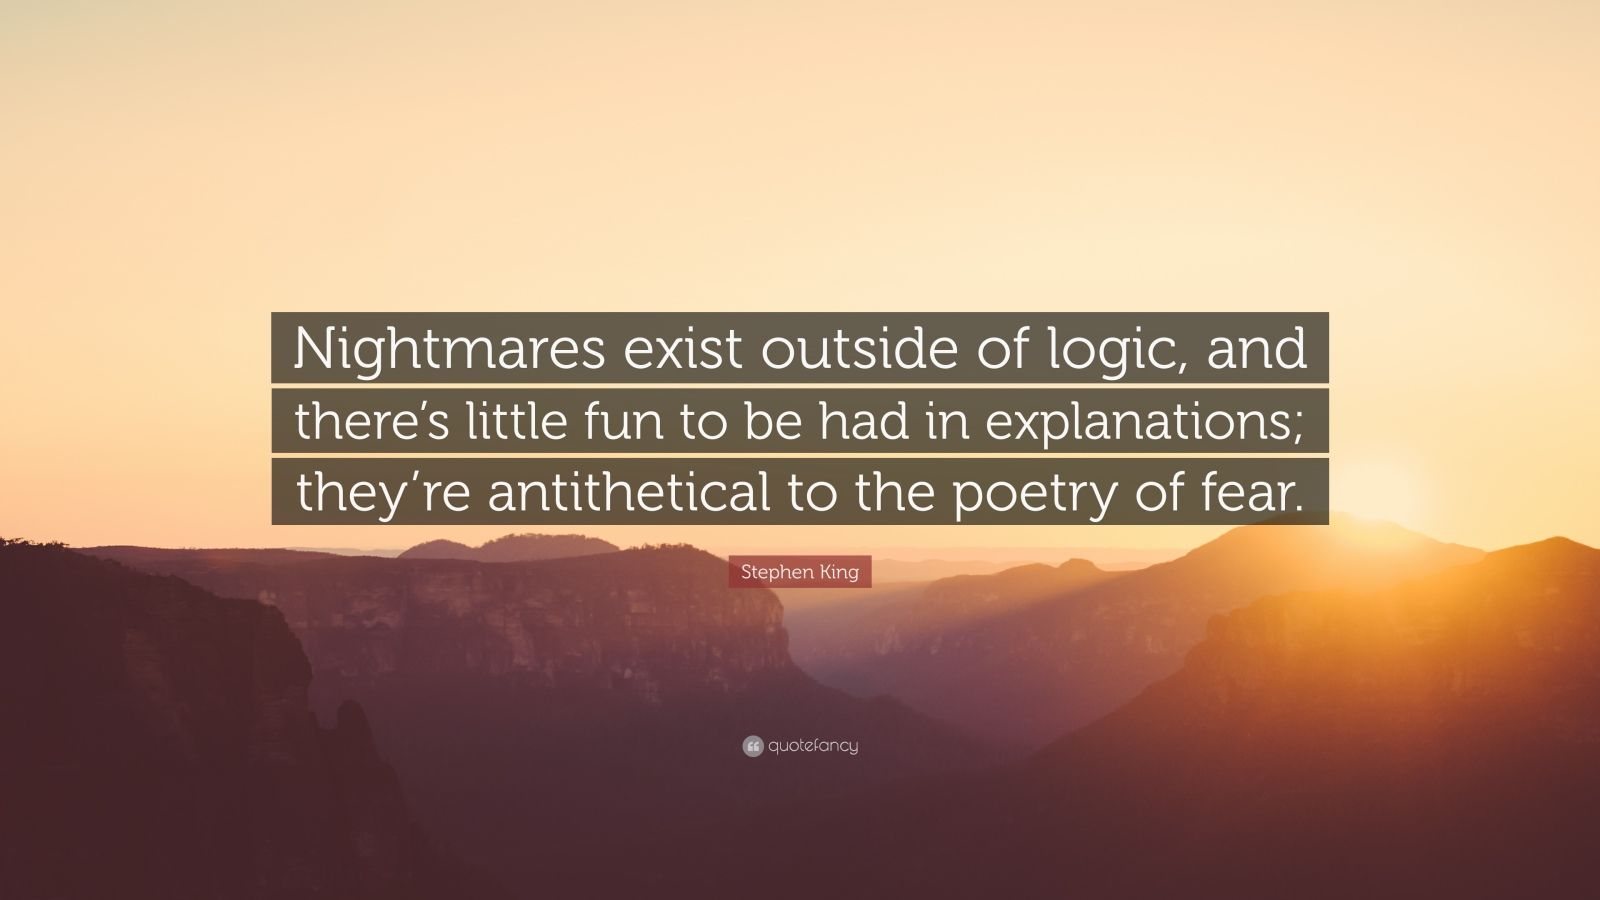 """Stephen King Quote: """"Nightmares exist outside of logic, and there's little fun to be had in explanations; they're antithetical to the poetry of fear."""""""